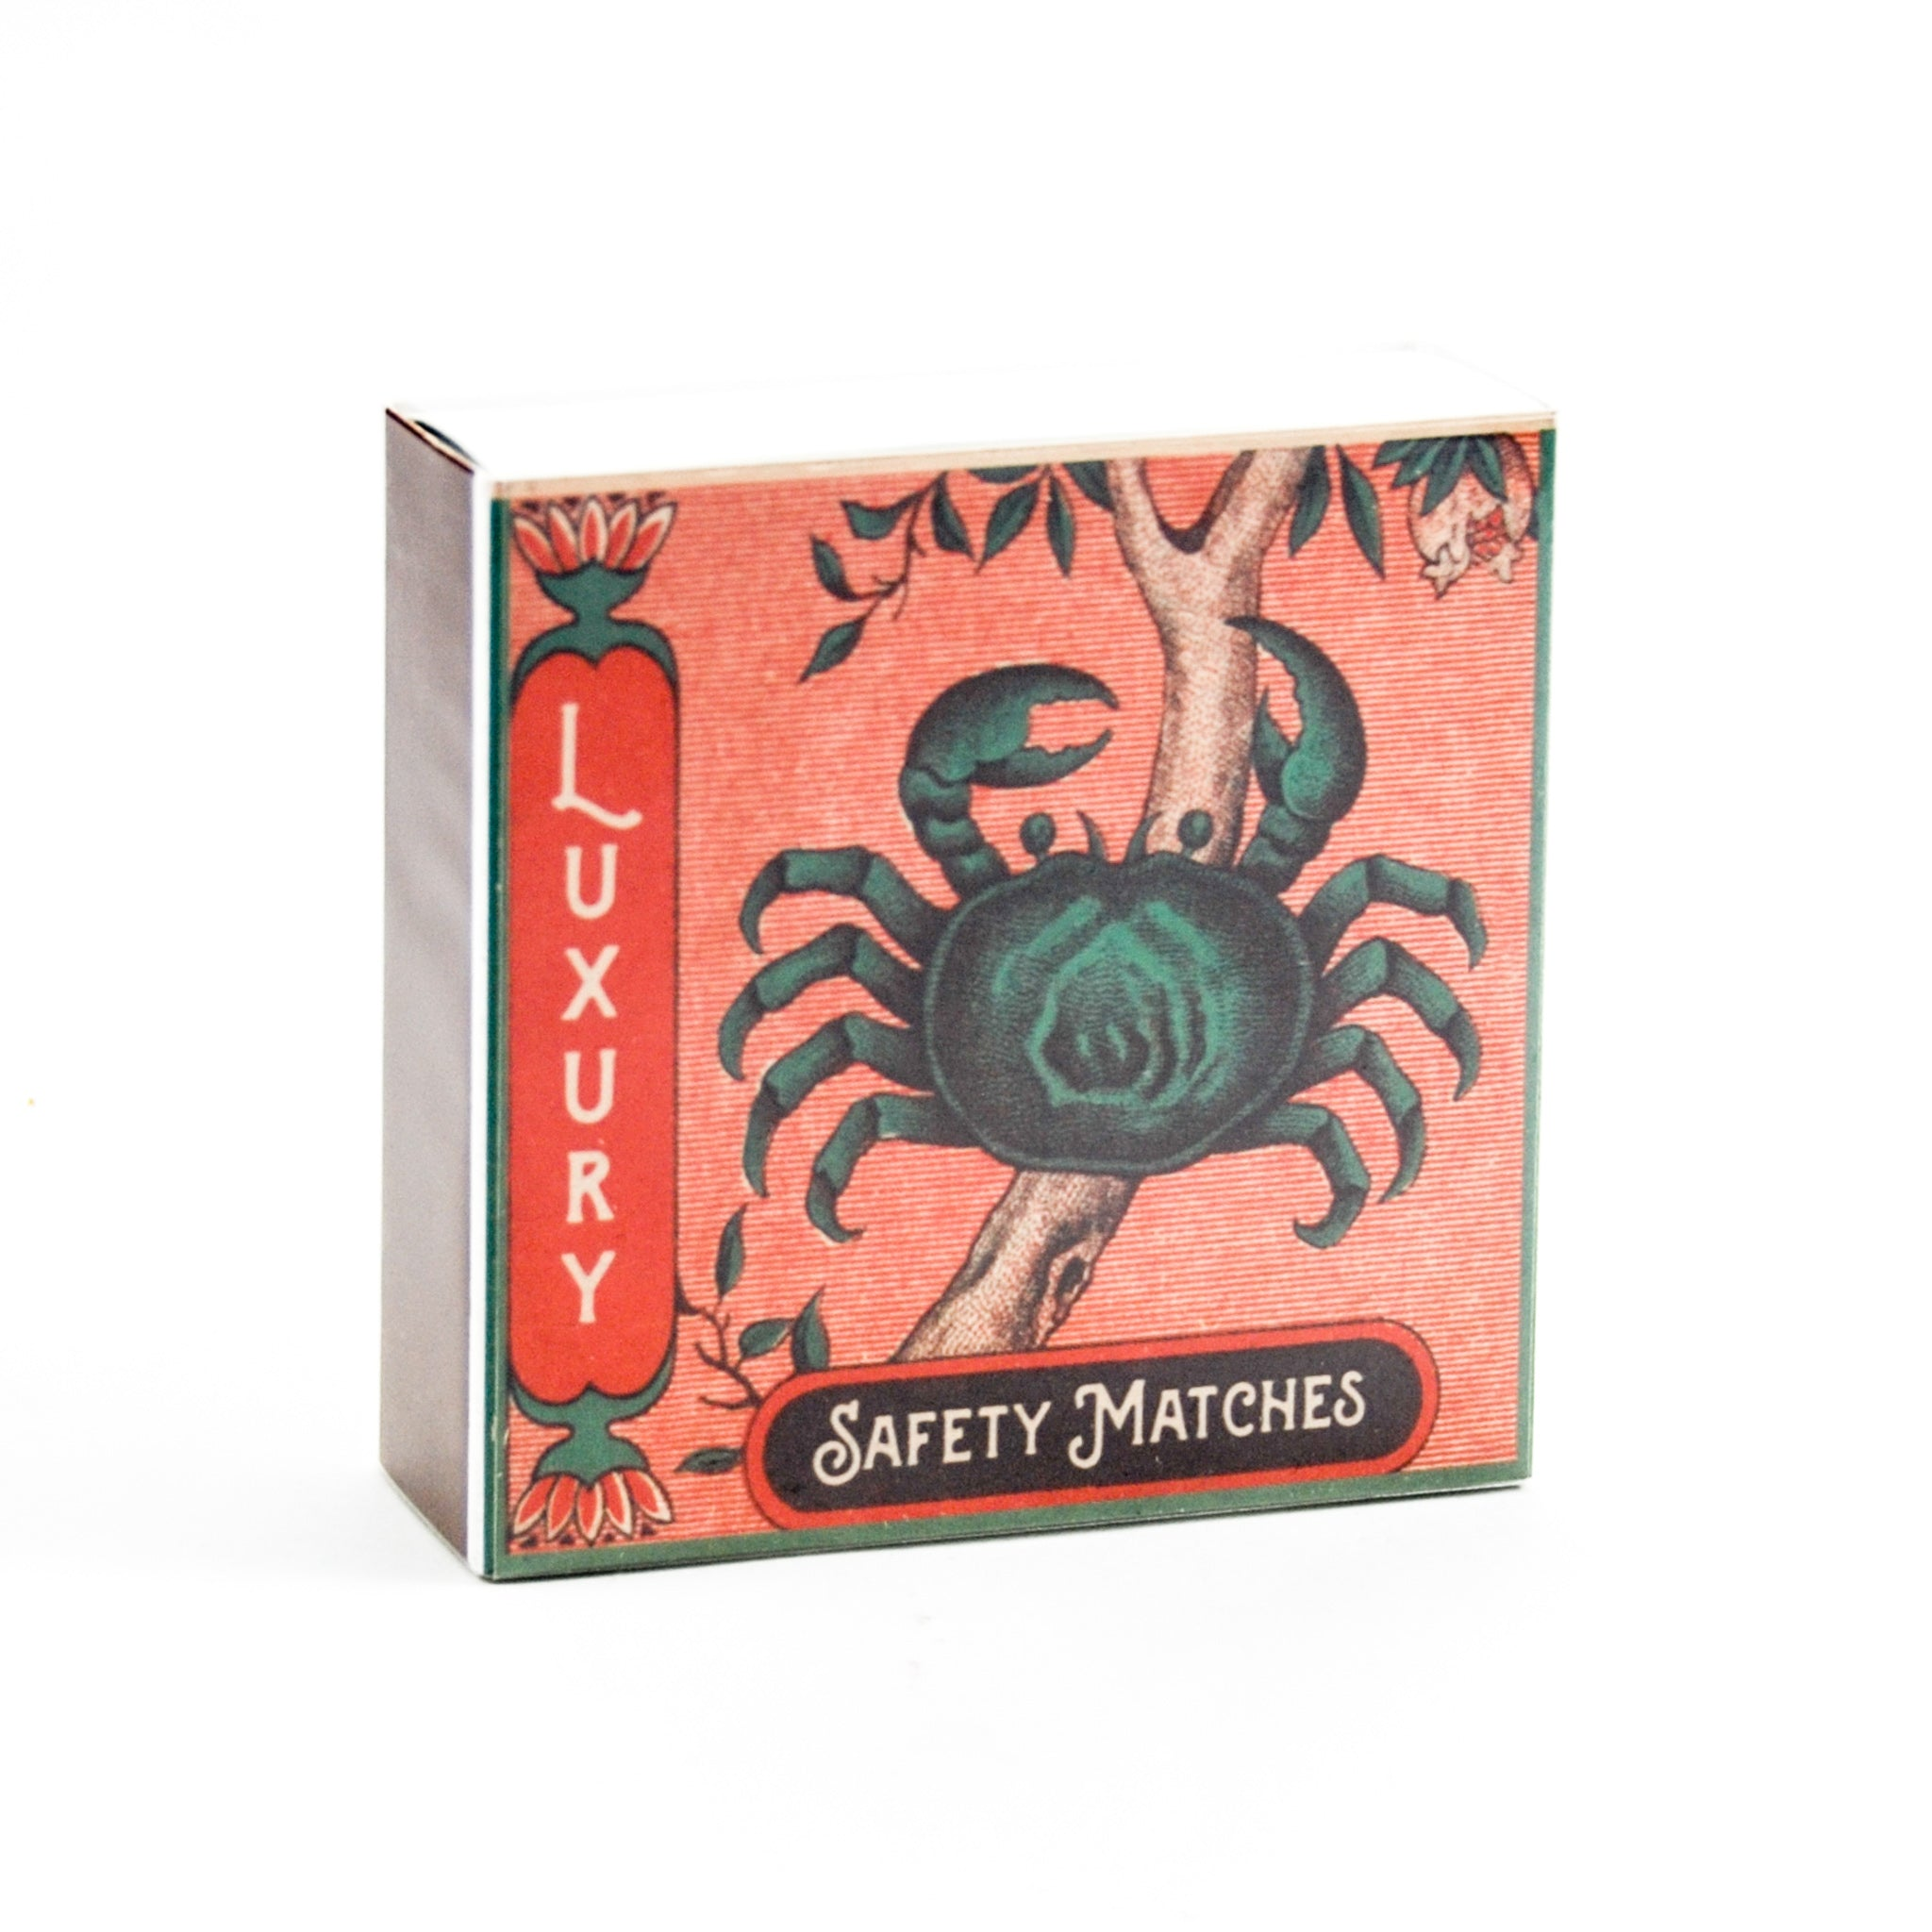 Archivist The Crab Luxury Safety Matches Cookware Household & Cleaning